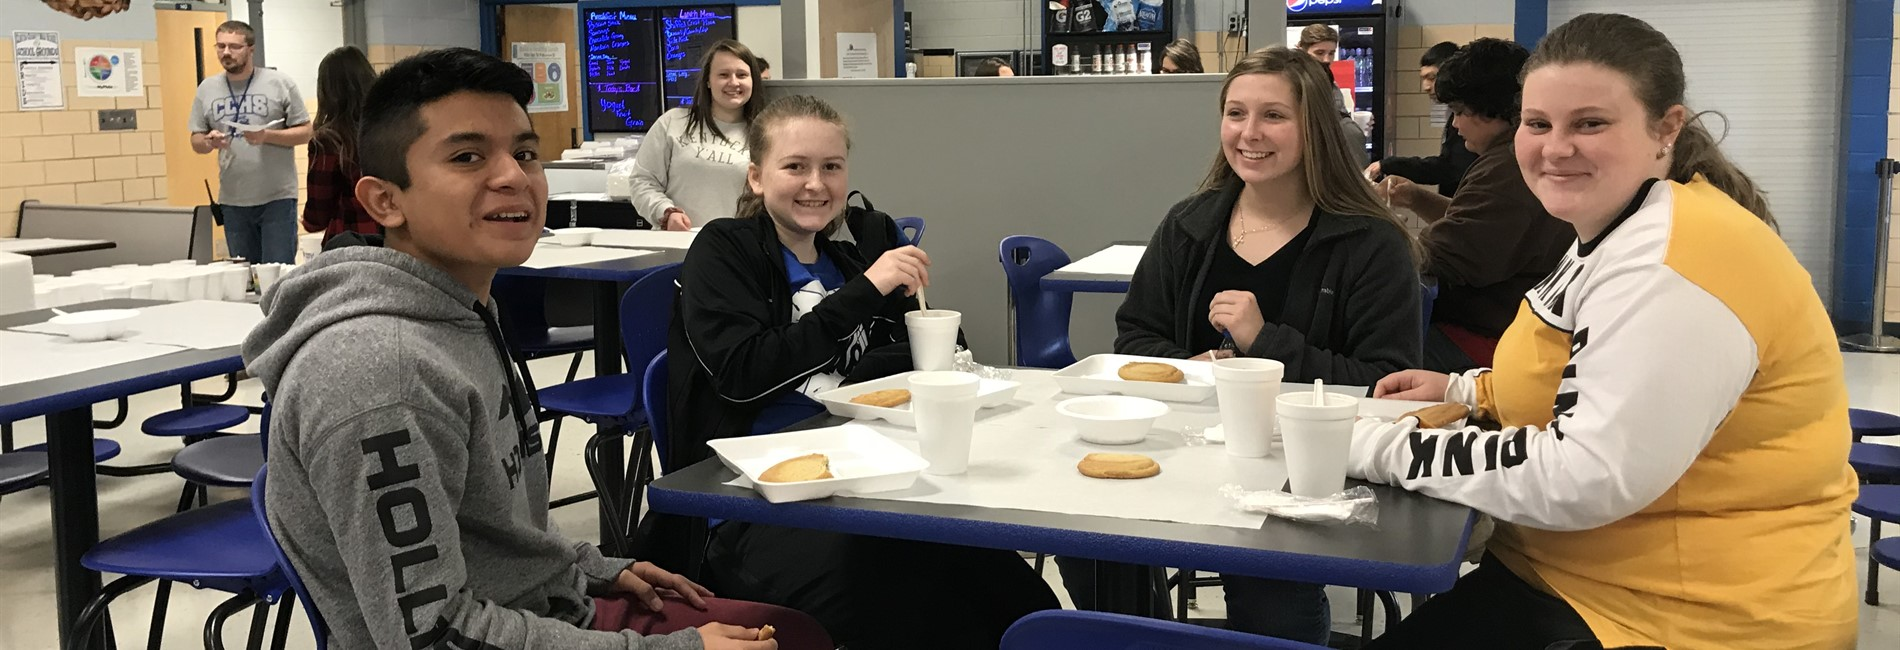 Students at CCHS who had perfect attendance for the month of November were rewarded with a hot chocolate and cookie decorating party.